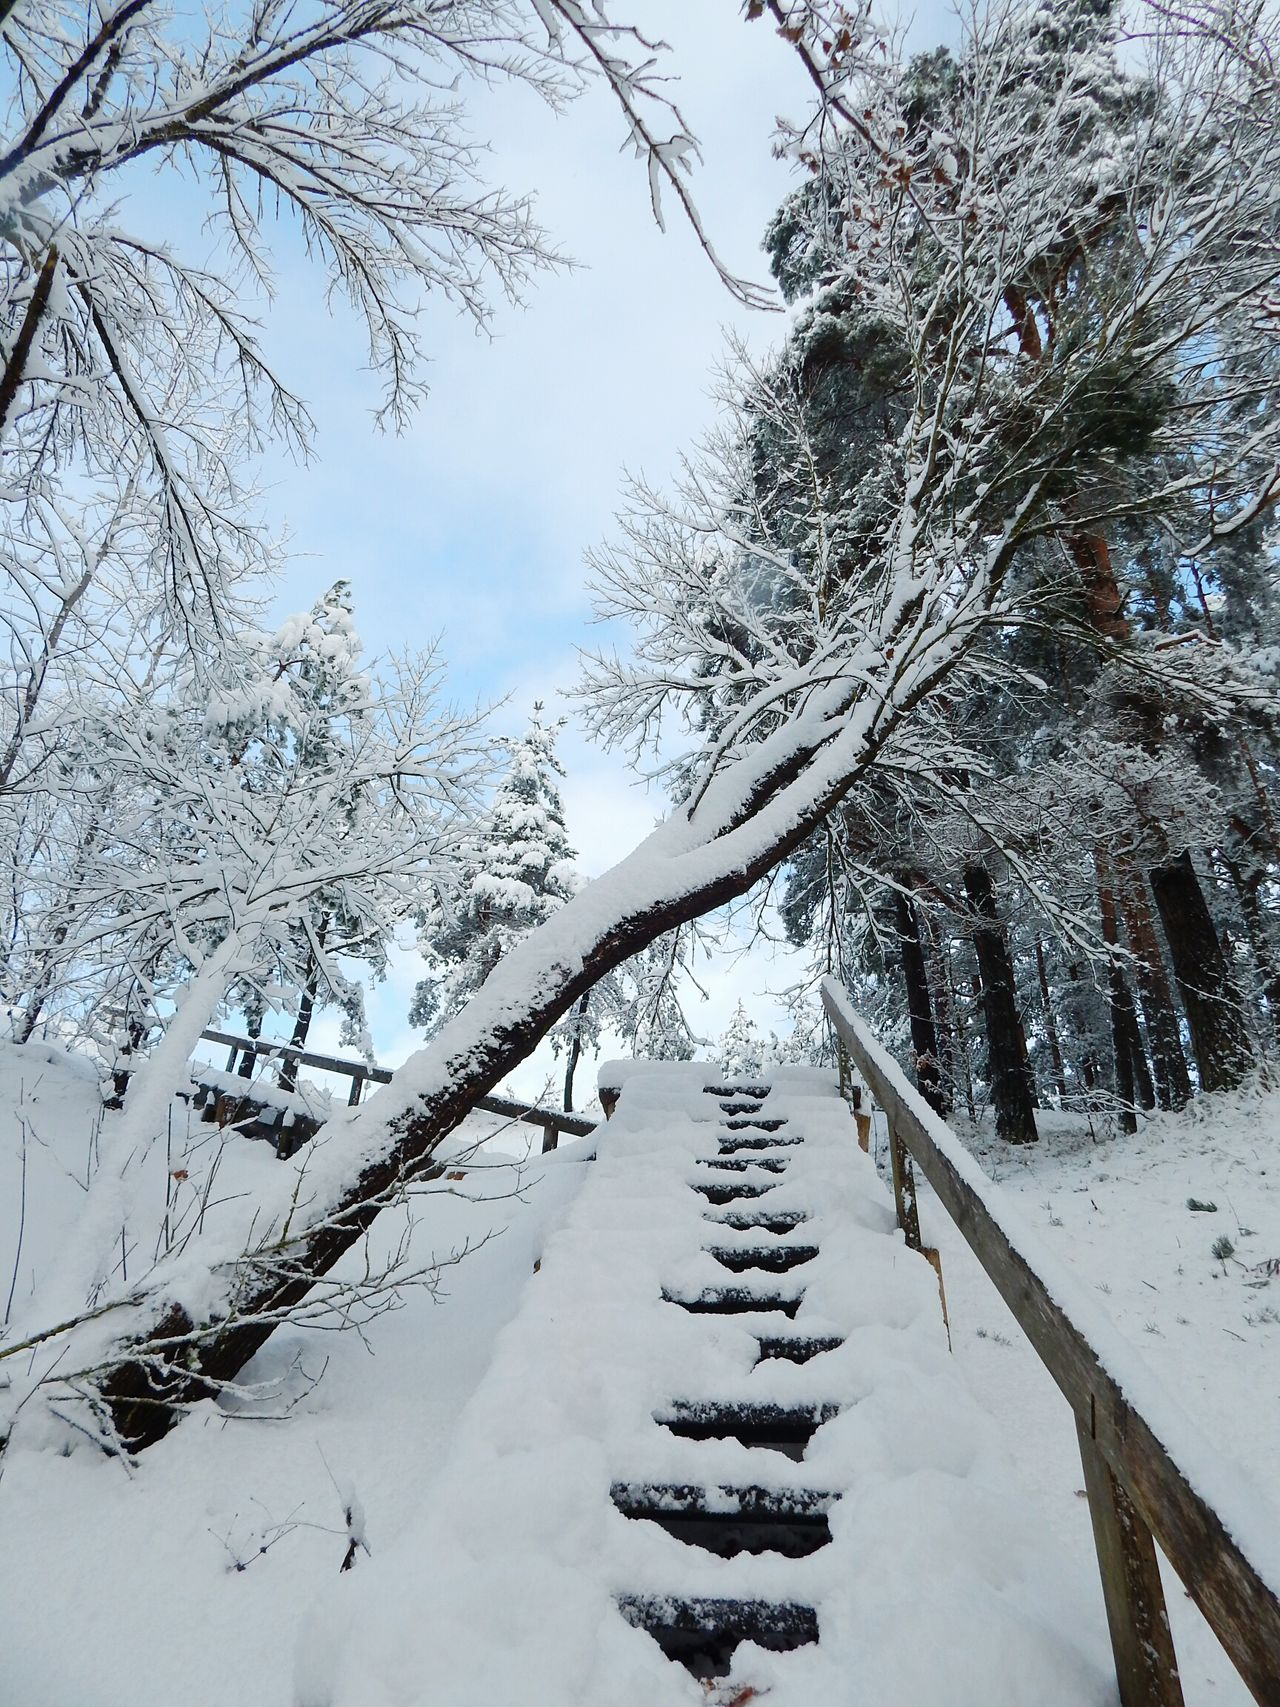 Tree Winter Cold Temperature Snow Nature Outdoors Beauty In Nature Tranquility No People Sky Day Scenics Branch Stairs Tree Beauty In Nature Riga Latvia Forest